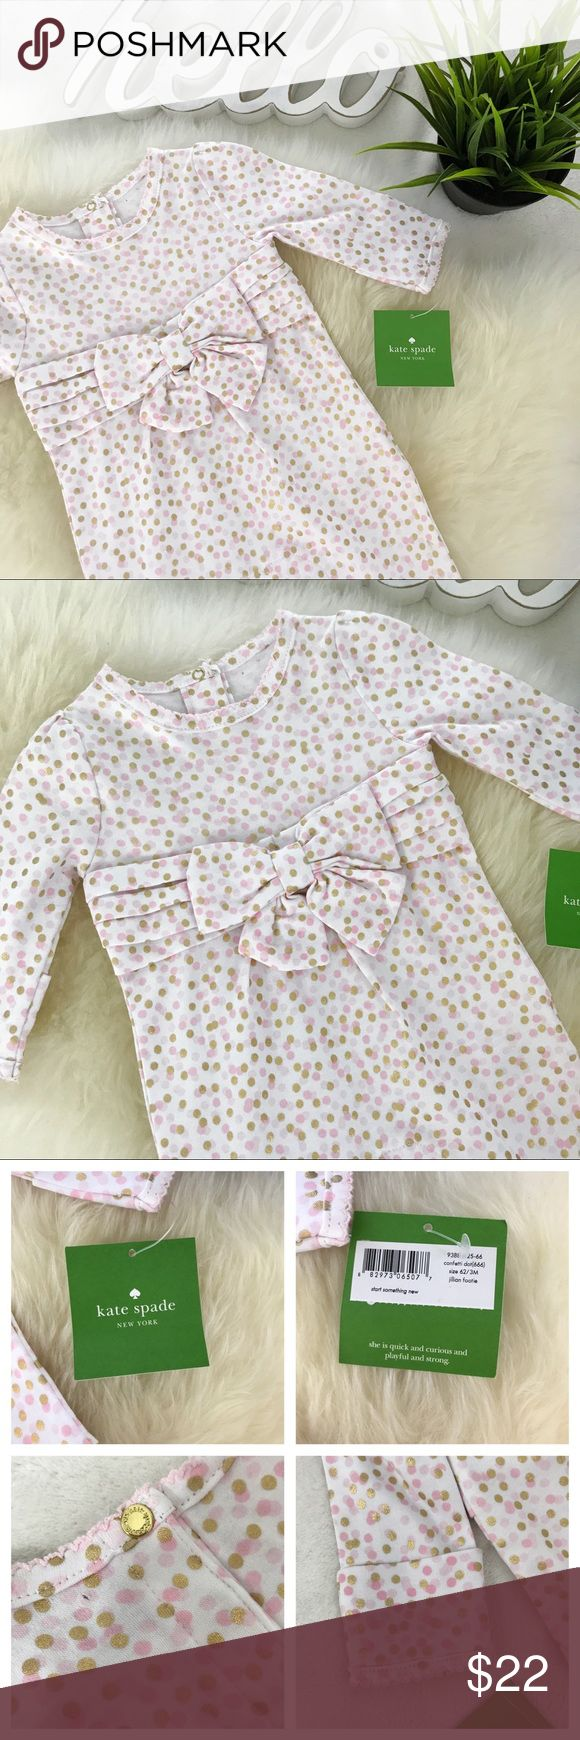 "KATE SPADE Confetti Dot Jillian footie baby onesie New with tag. 3 Month size There is a very small hole at the back of the neck where security sensor was attached-see phot #4 and #7 Super cut pink and metallic gold polka dot print. Foldover mitten hands Last image is stock for reference, all others are actual piece for sale.  Chest 9"" Length aprox 19""  Review all photos thoroughly Feel free to ask questions   📎Measurements are approximate  ✏️Save 15% on bundles of 3 or more 👍🏻Reasonable…"